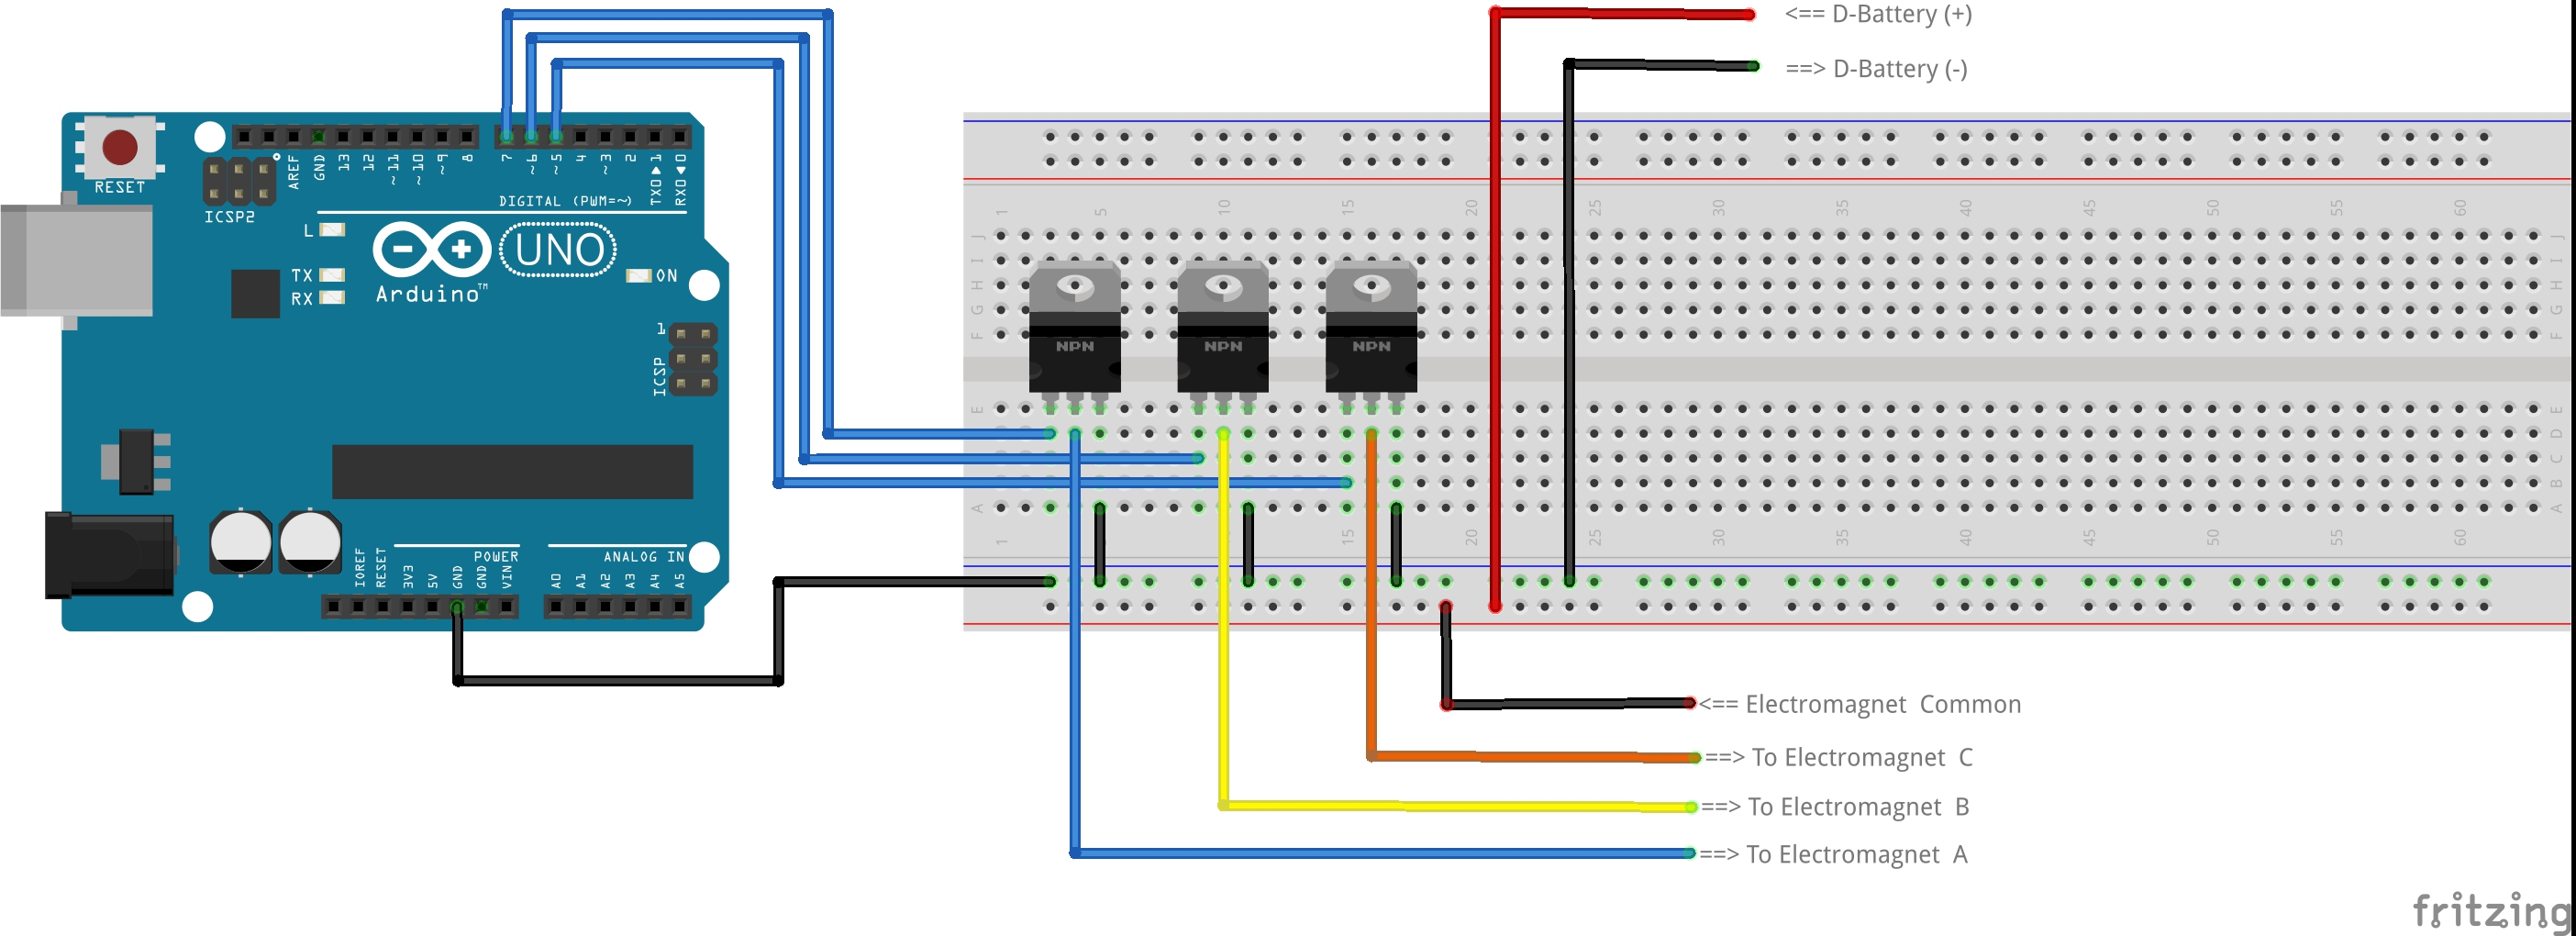 Recreate A 140 Year Old Brushless Motor On 3d Printer Make Speed Fan Wiring Diagram Along With End Stop Breadboard The Circuit Following Then Download Arduino Code Here Connect To Your Computer Open